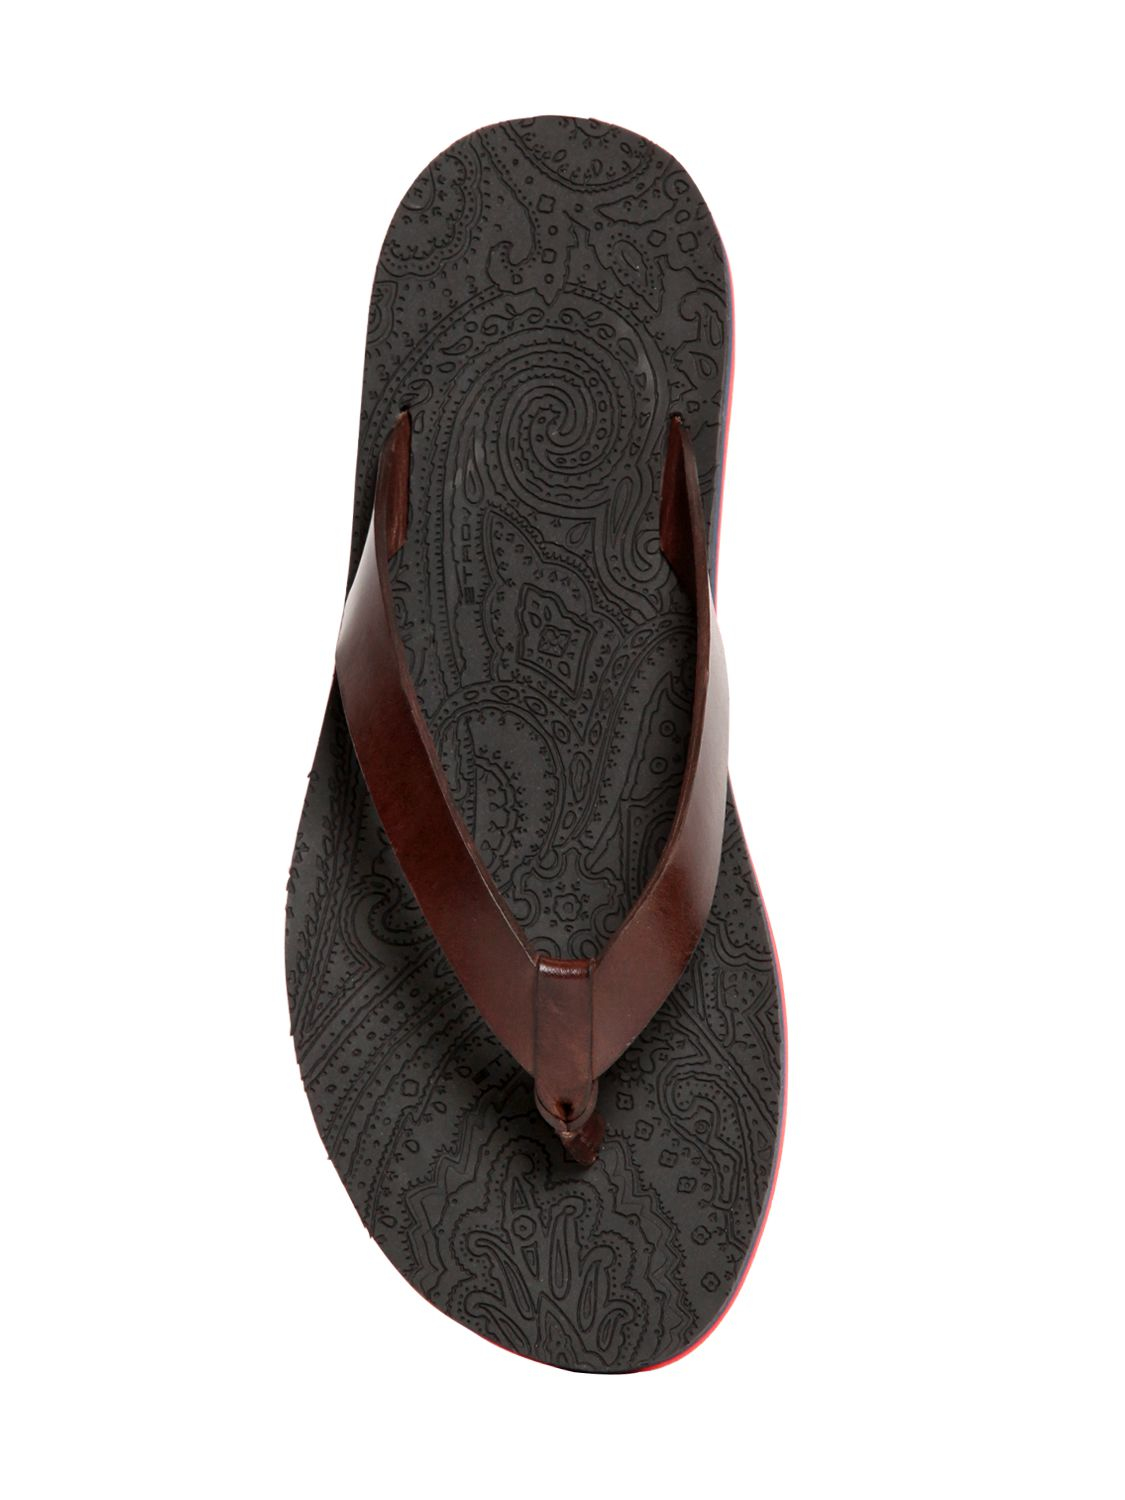 Lyst - Etro Leather  Rubber Flip Flops In Brown For Men-4382